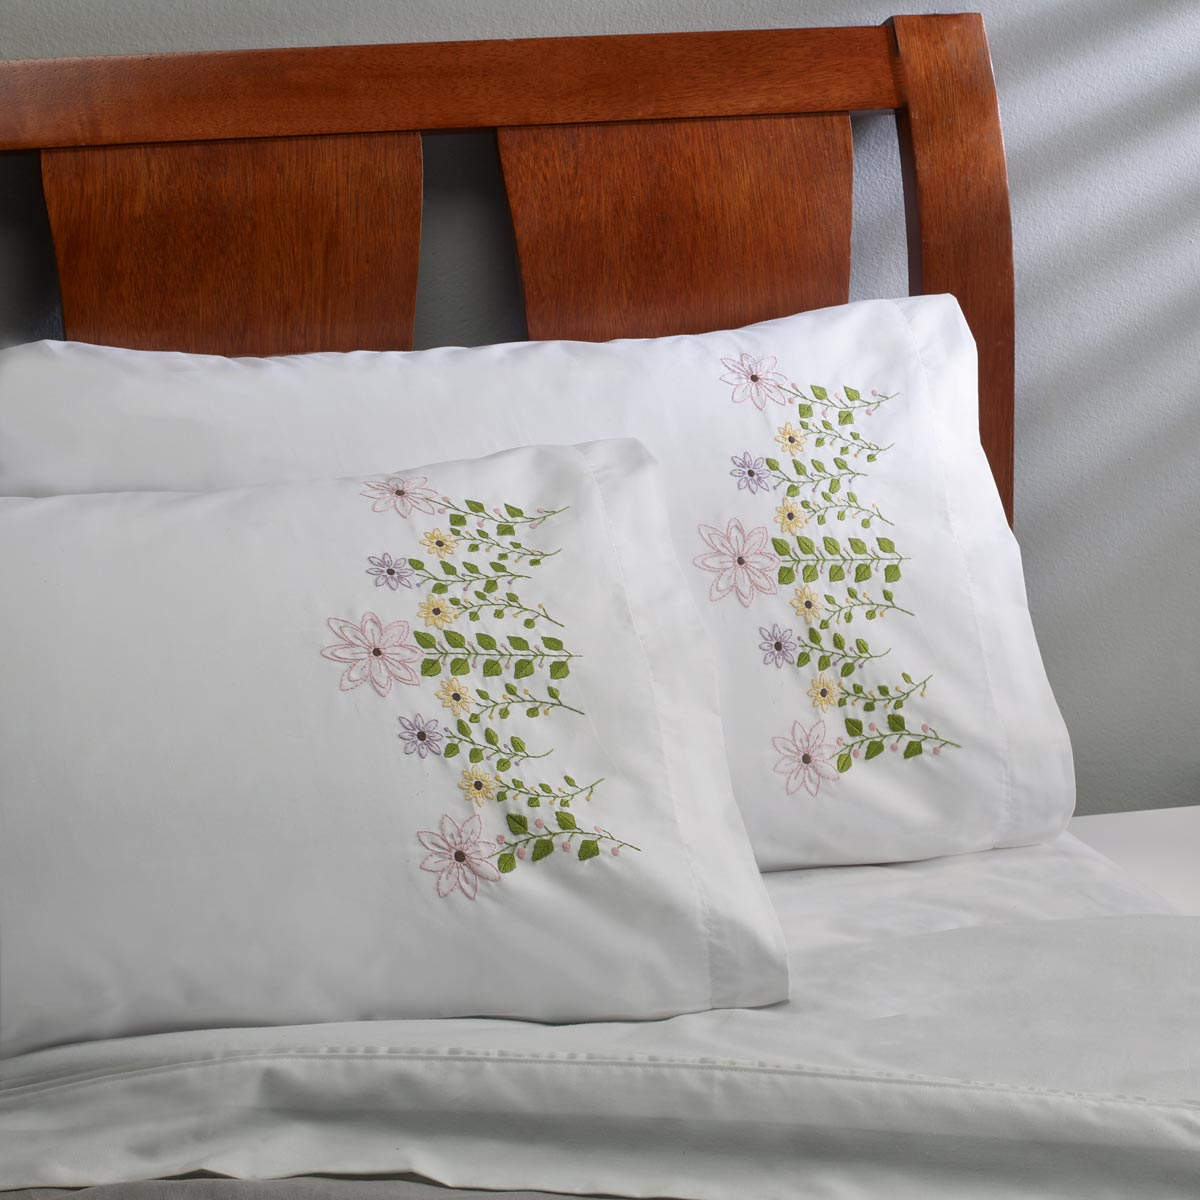 Bucilla ® Stamped Cross Stitch & Embroidery - Pillowcase Pairs - Pink Flowers - 47934E